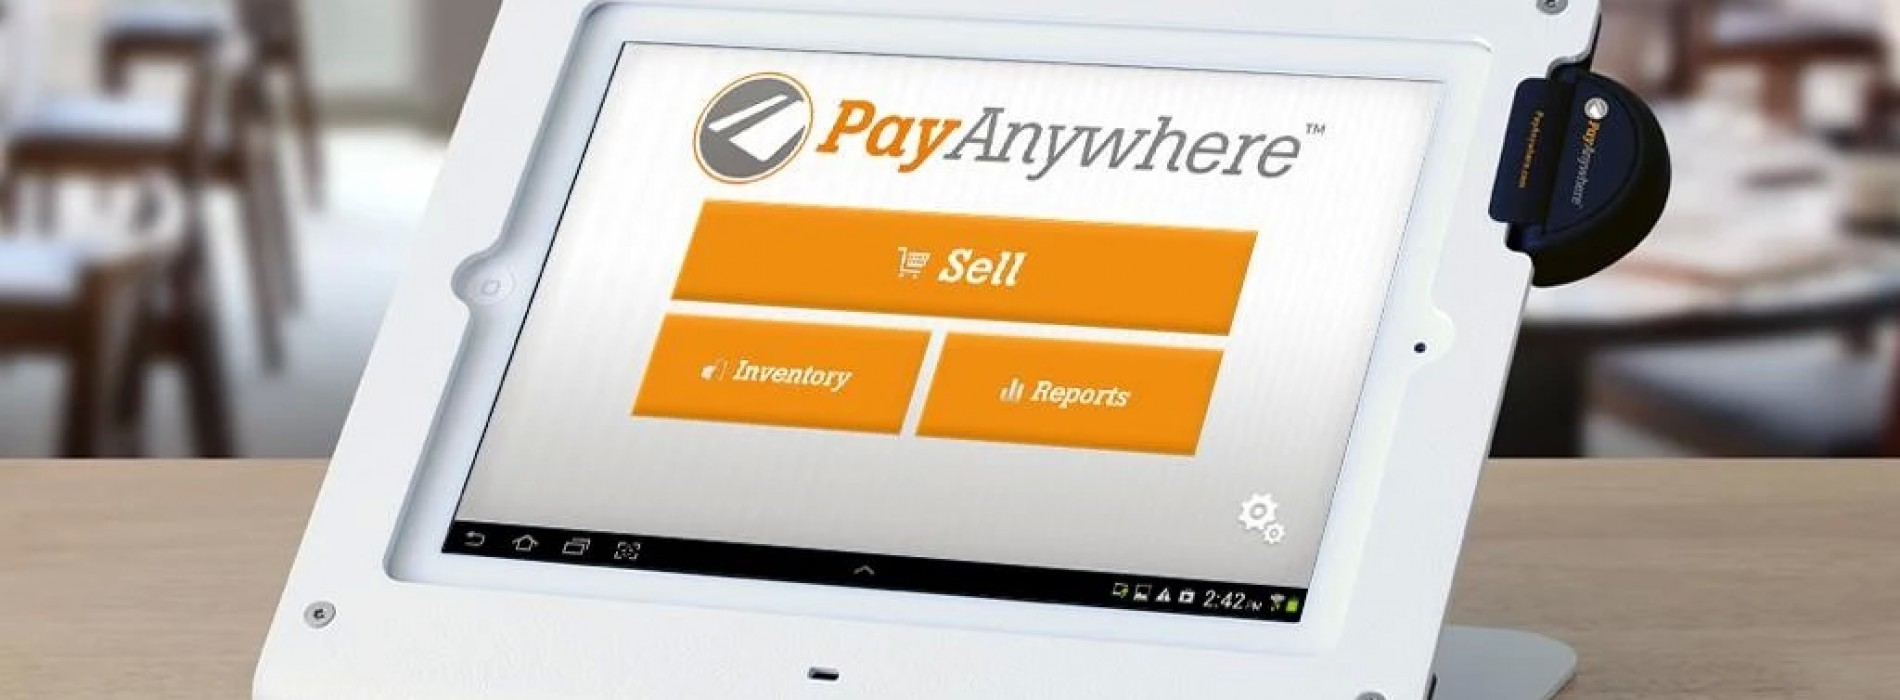 PayAnywhere rings up new mobile payment app experience